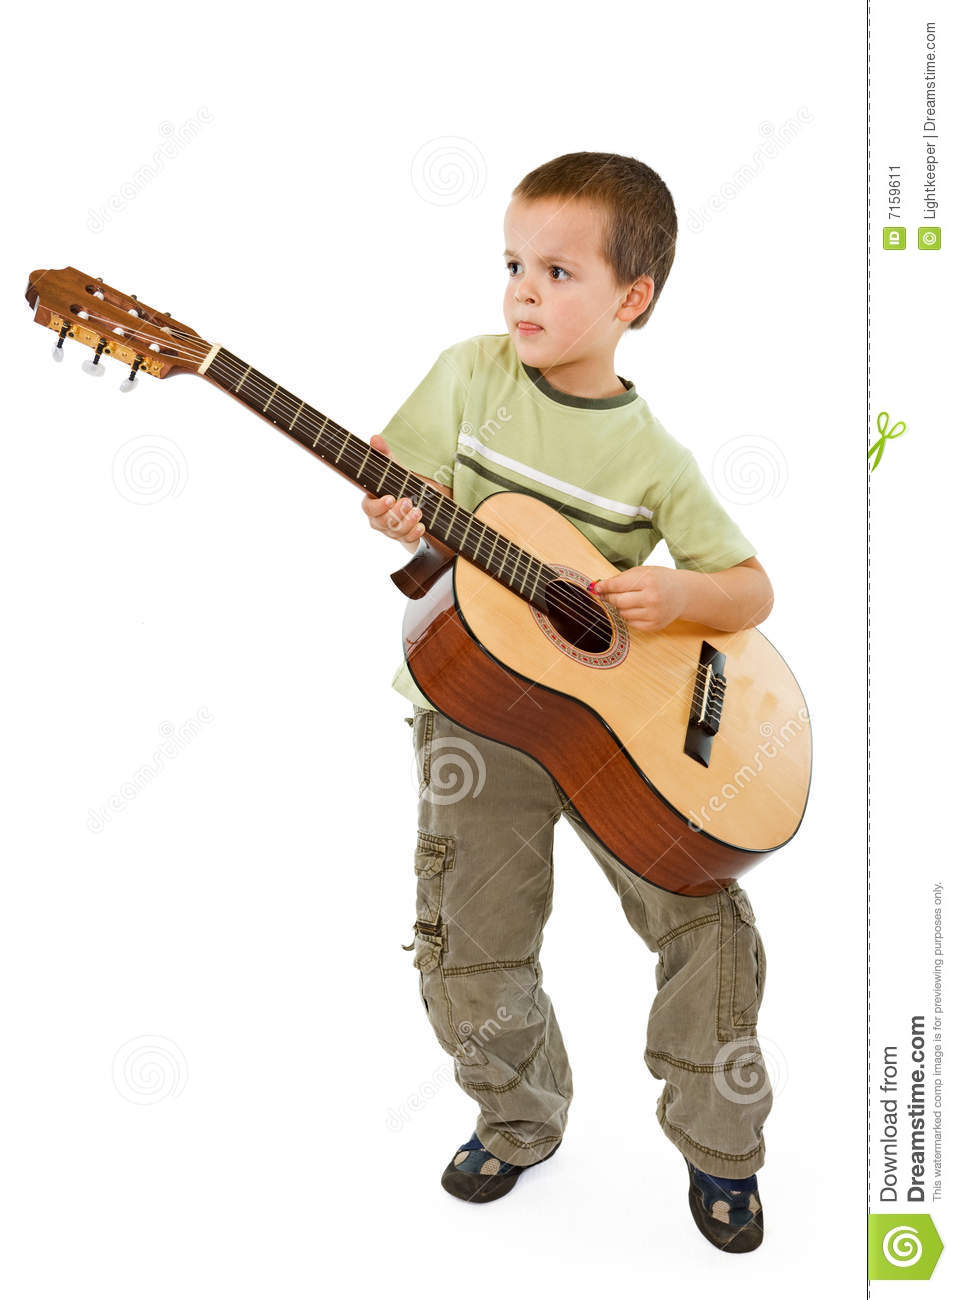 guitar kid stock image image of happy child isolated 7159611. Black Bedroom Furniture Sets. Home Design Ideas